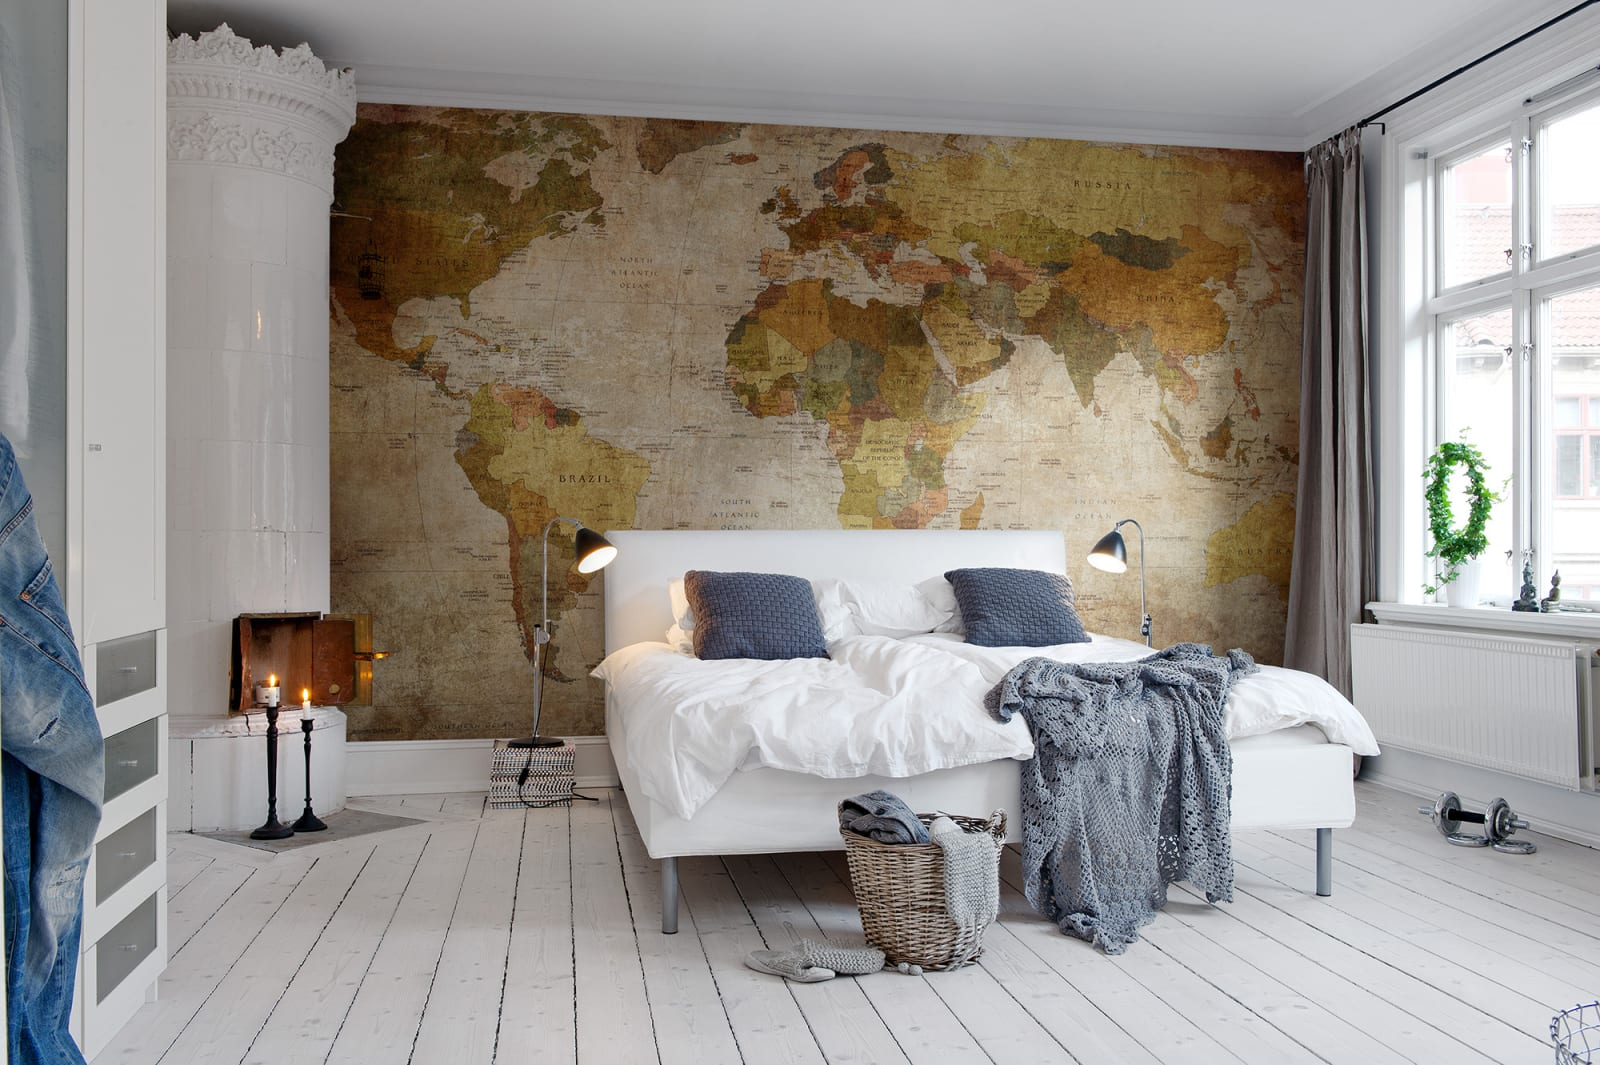 World map r10771 rebel walls en au create account wall mural r10771 world map gumiabroncs Images